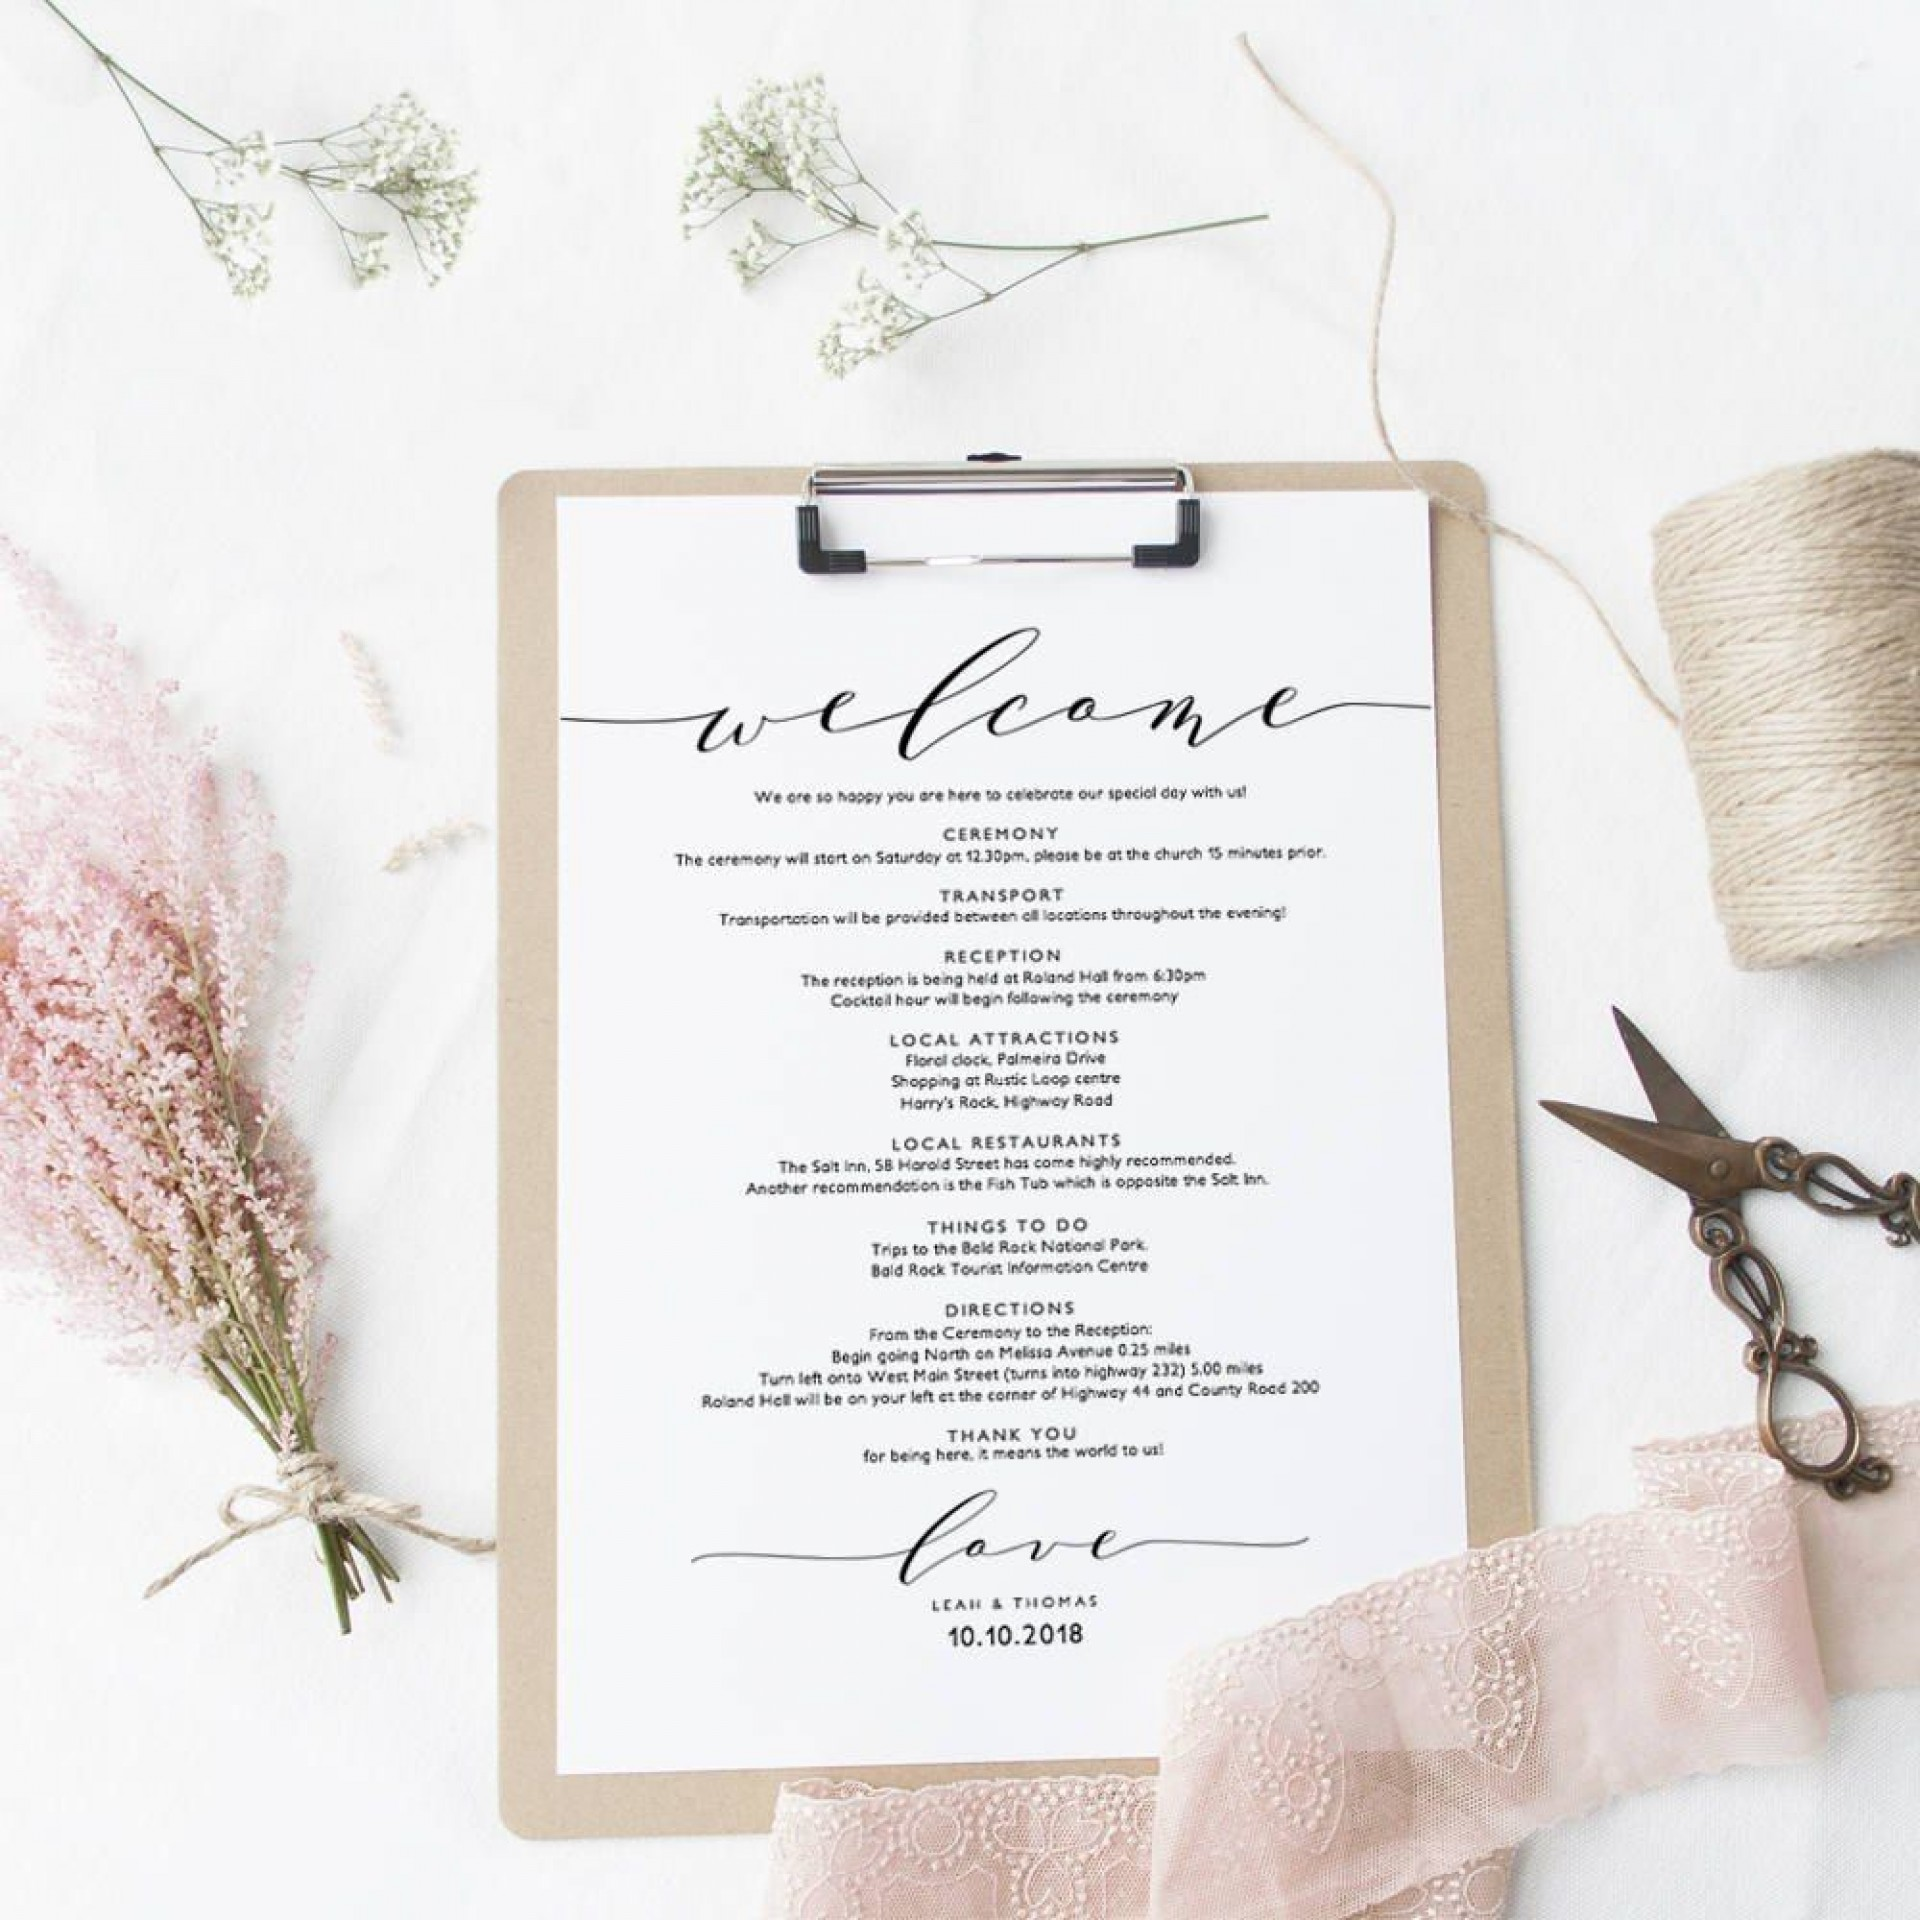 003 Excellent Wedding Welcome Letter Template Free Idea  Bag1920